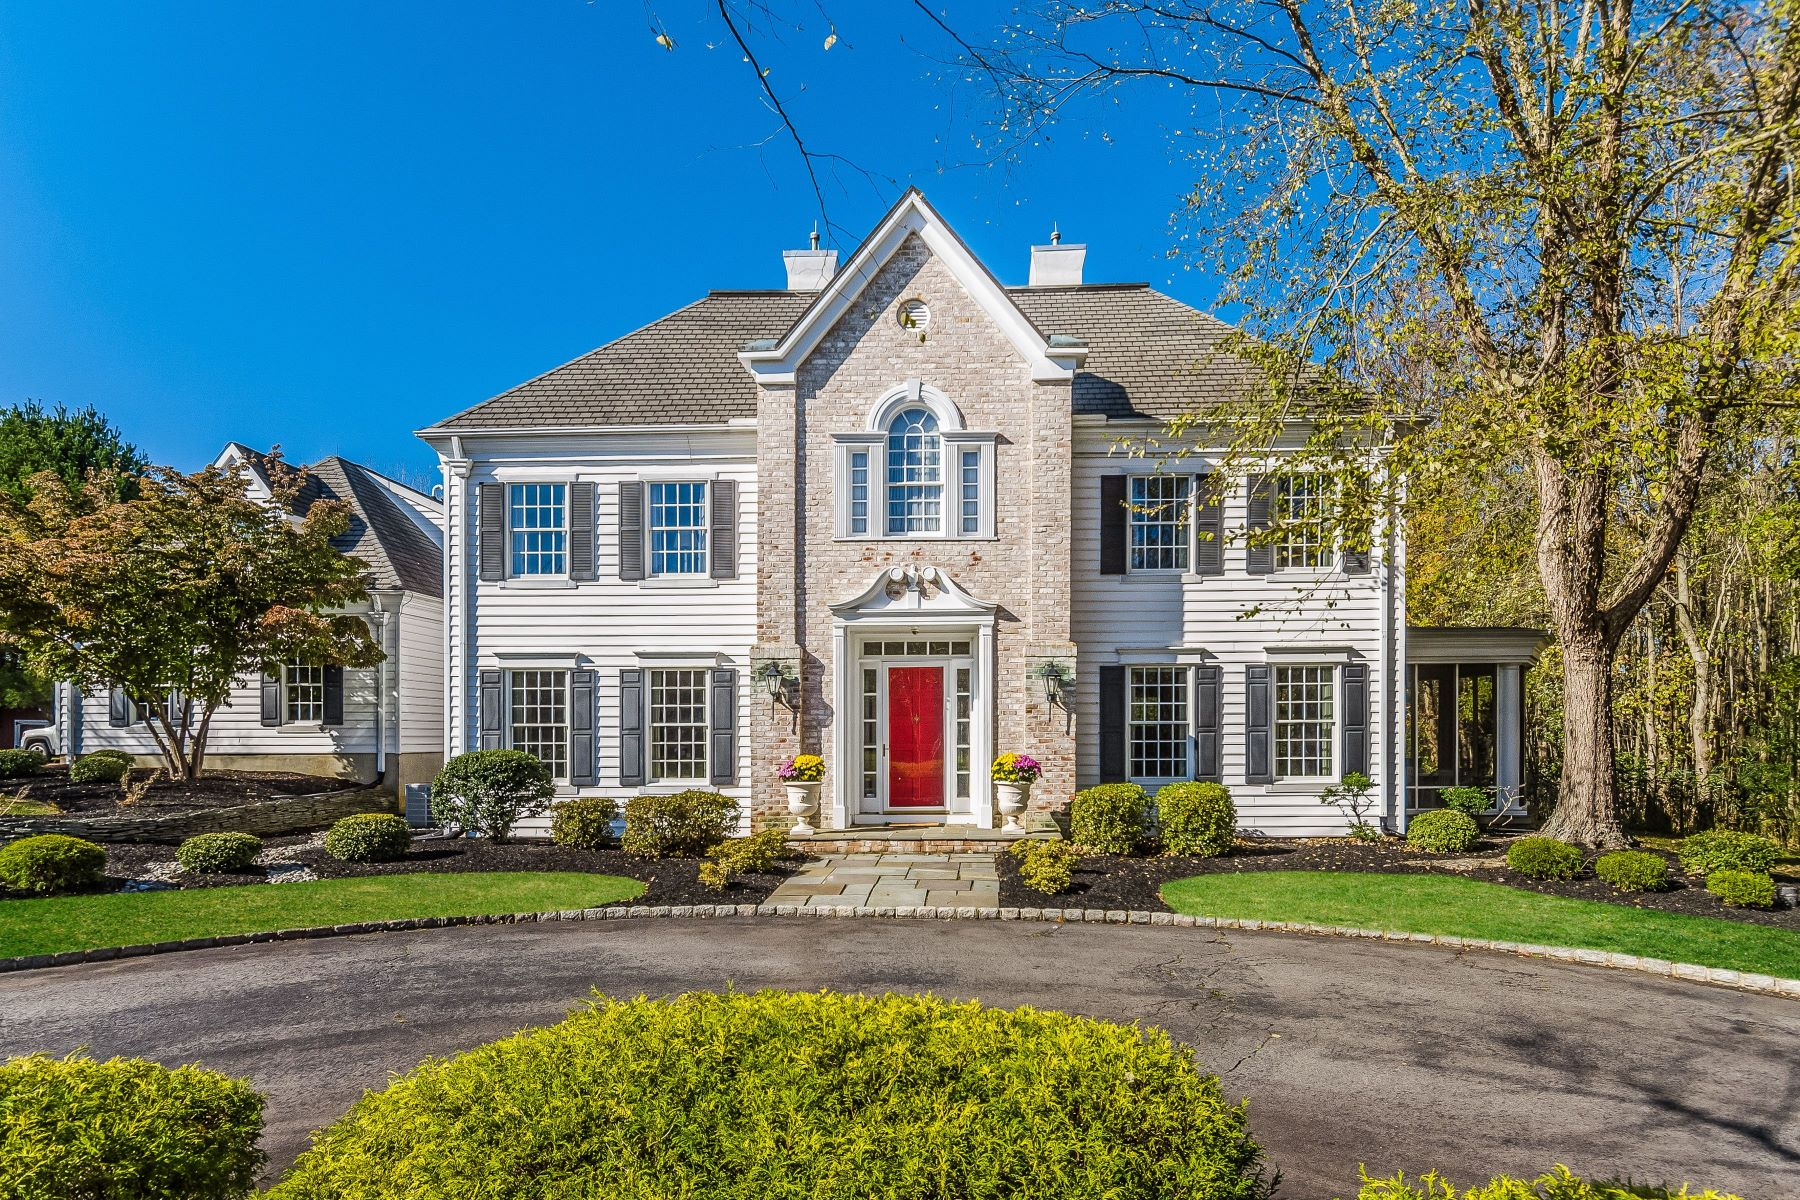 Single Family Homes for Sale at In Hamilton: Wooded, Grand, and Gracious 4 Hidden Hollow Drive, Hamilton, New Jersey 08620 United States